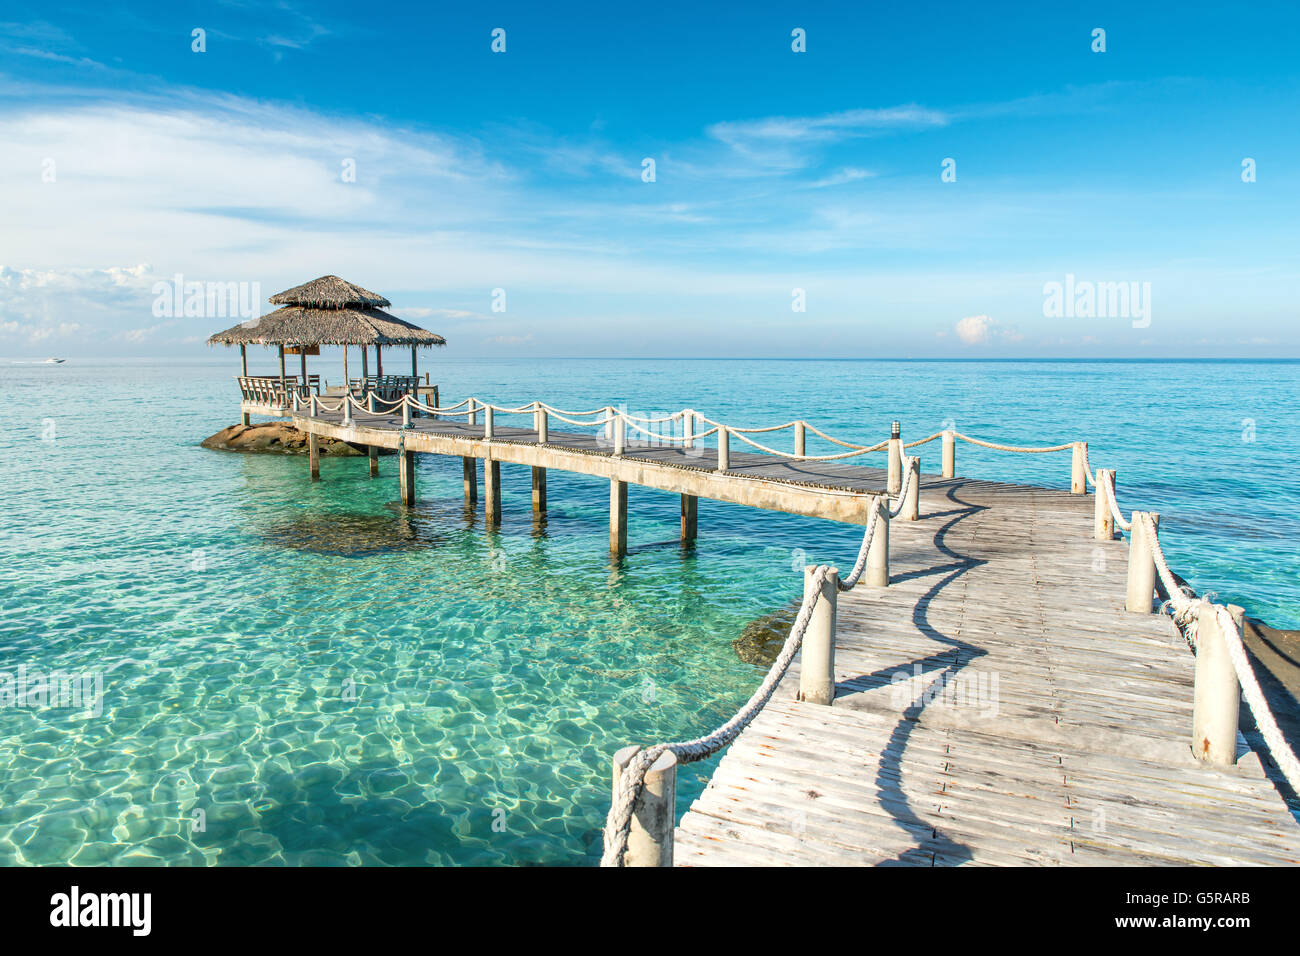 Summer, Travel, Vacation and Holiday concept - Wooden pier in Phuket, Thailand. Use for Summer Travel and Summer - Stock Image